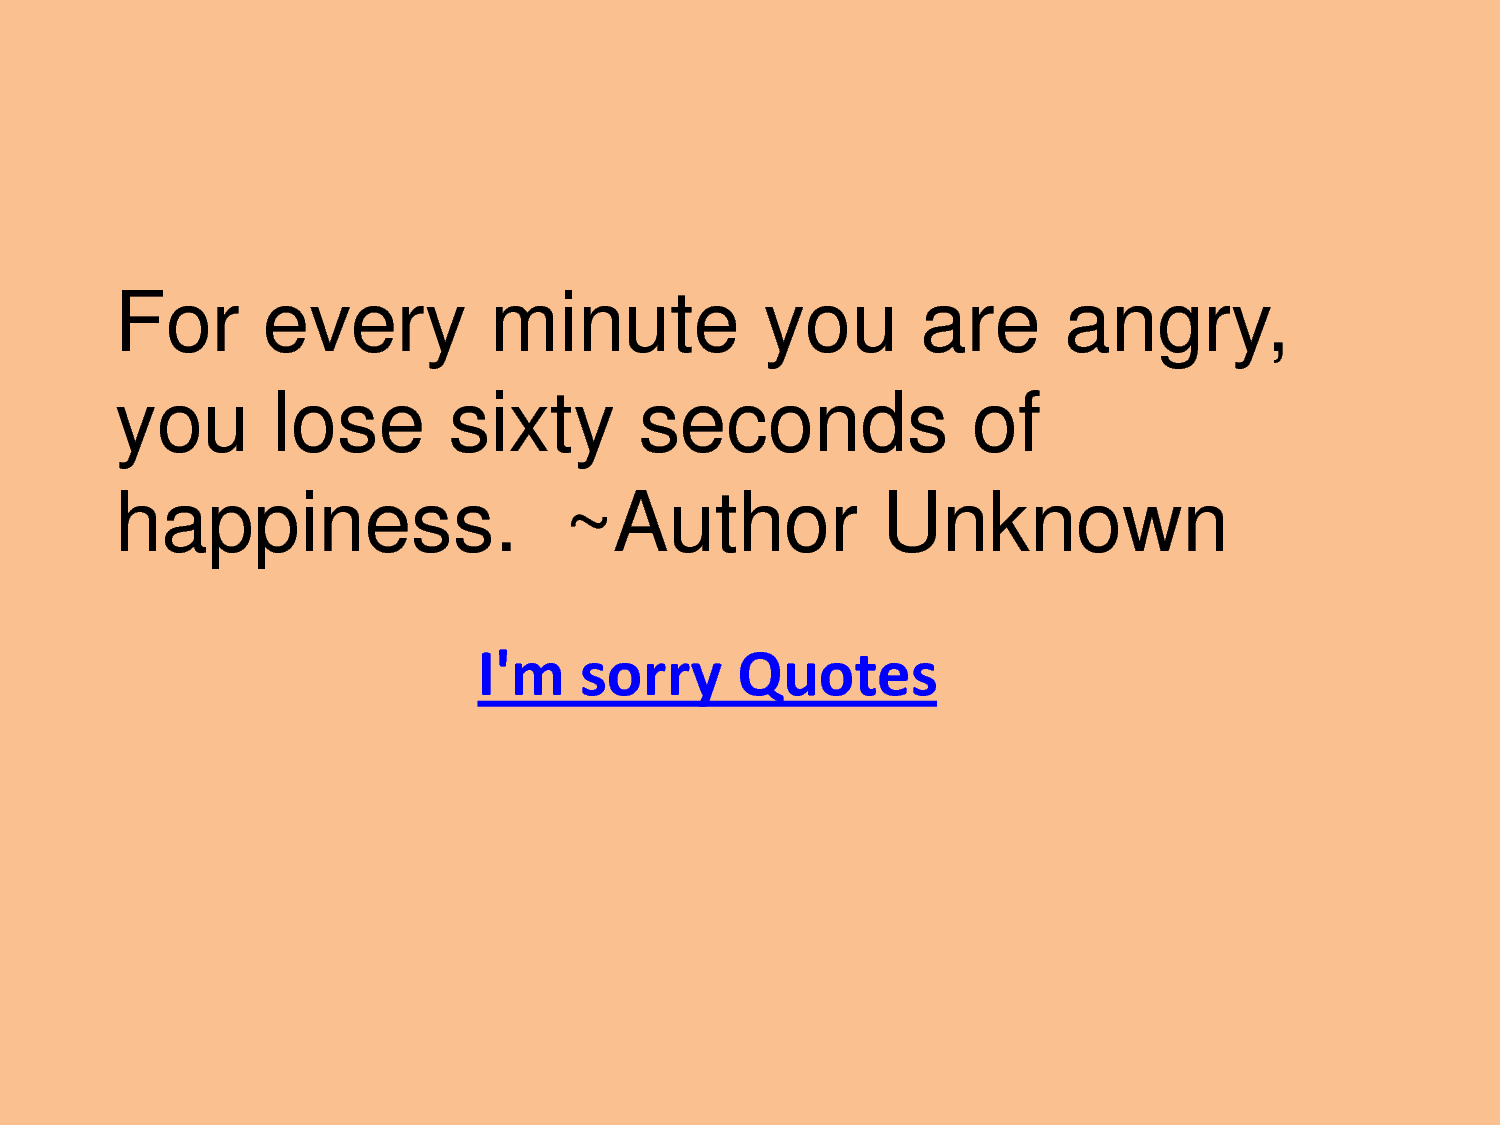 i'm sorry quotes | web tips,computer tips and tricks